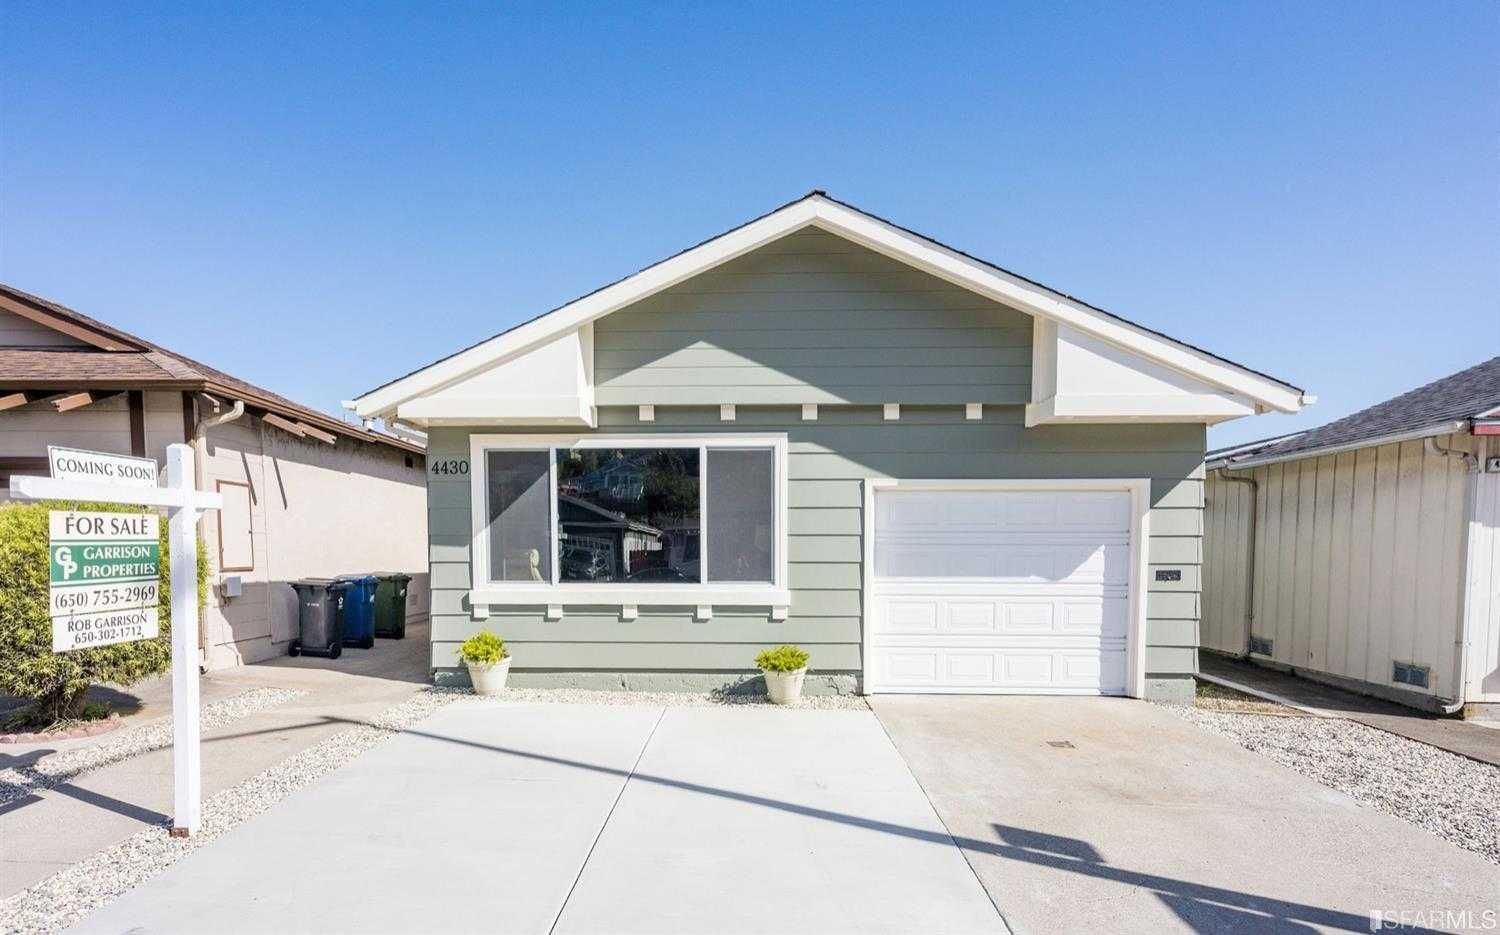 $998,000 - 3Br/2Ba -  for Sale in Daly City